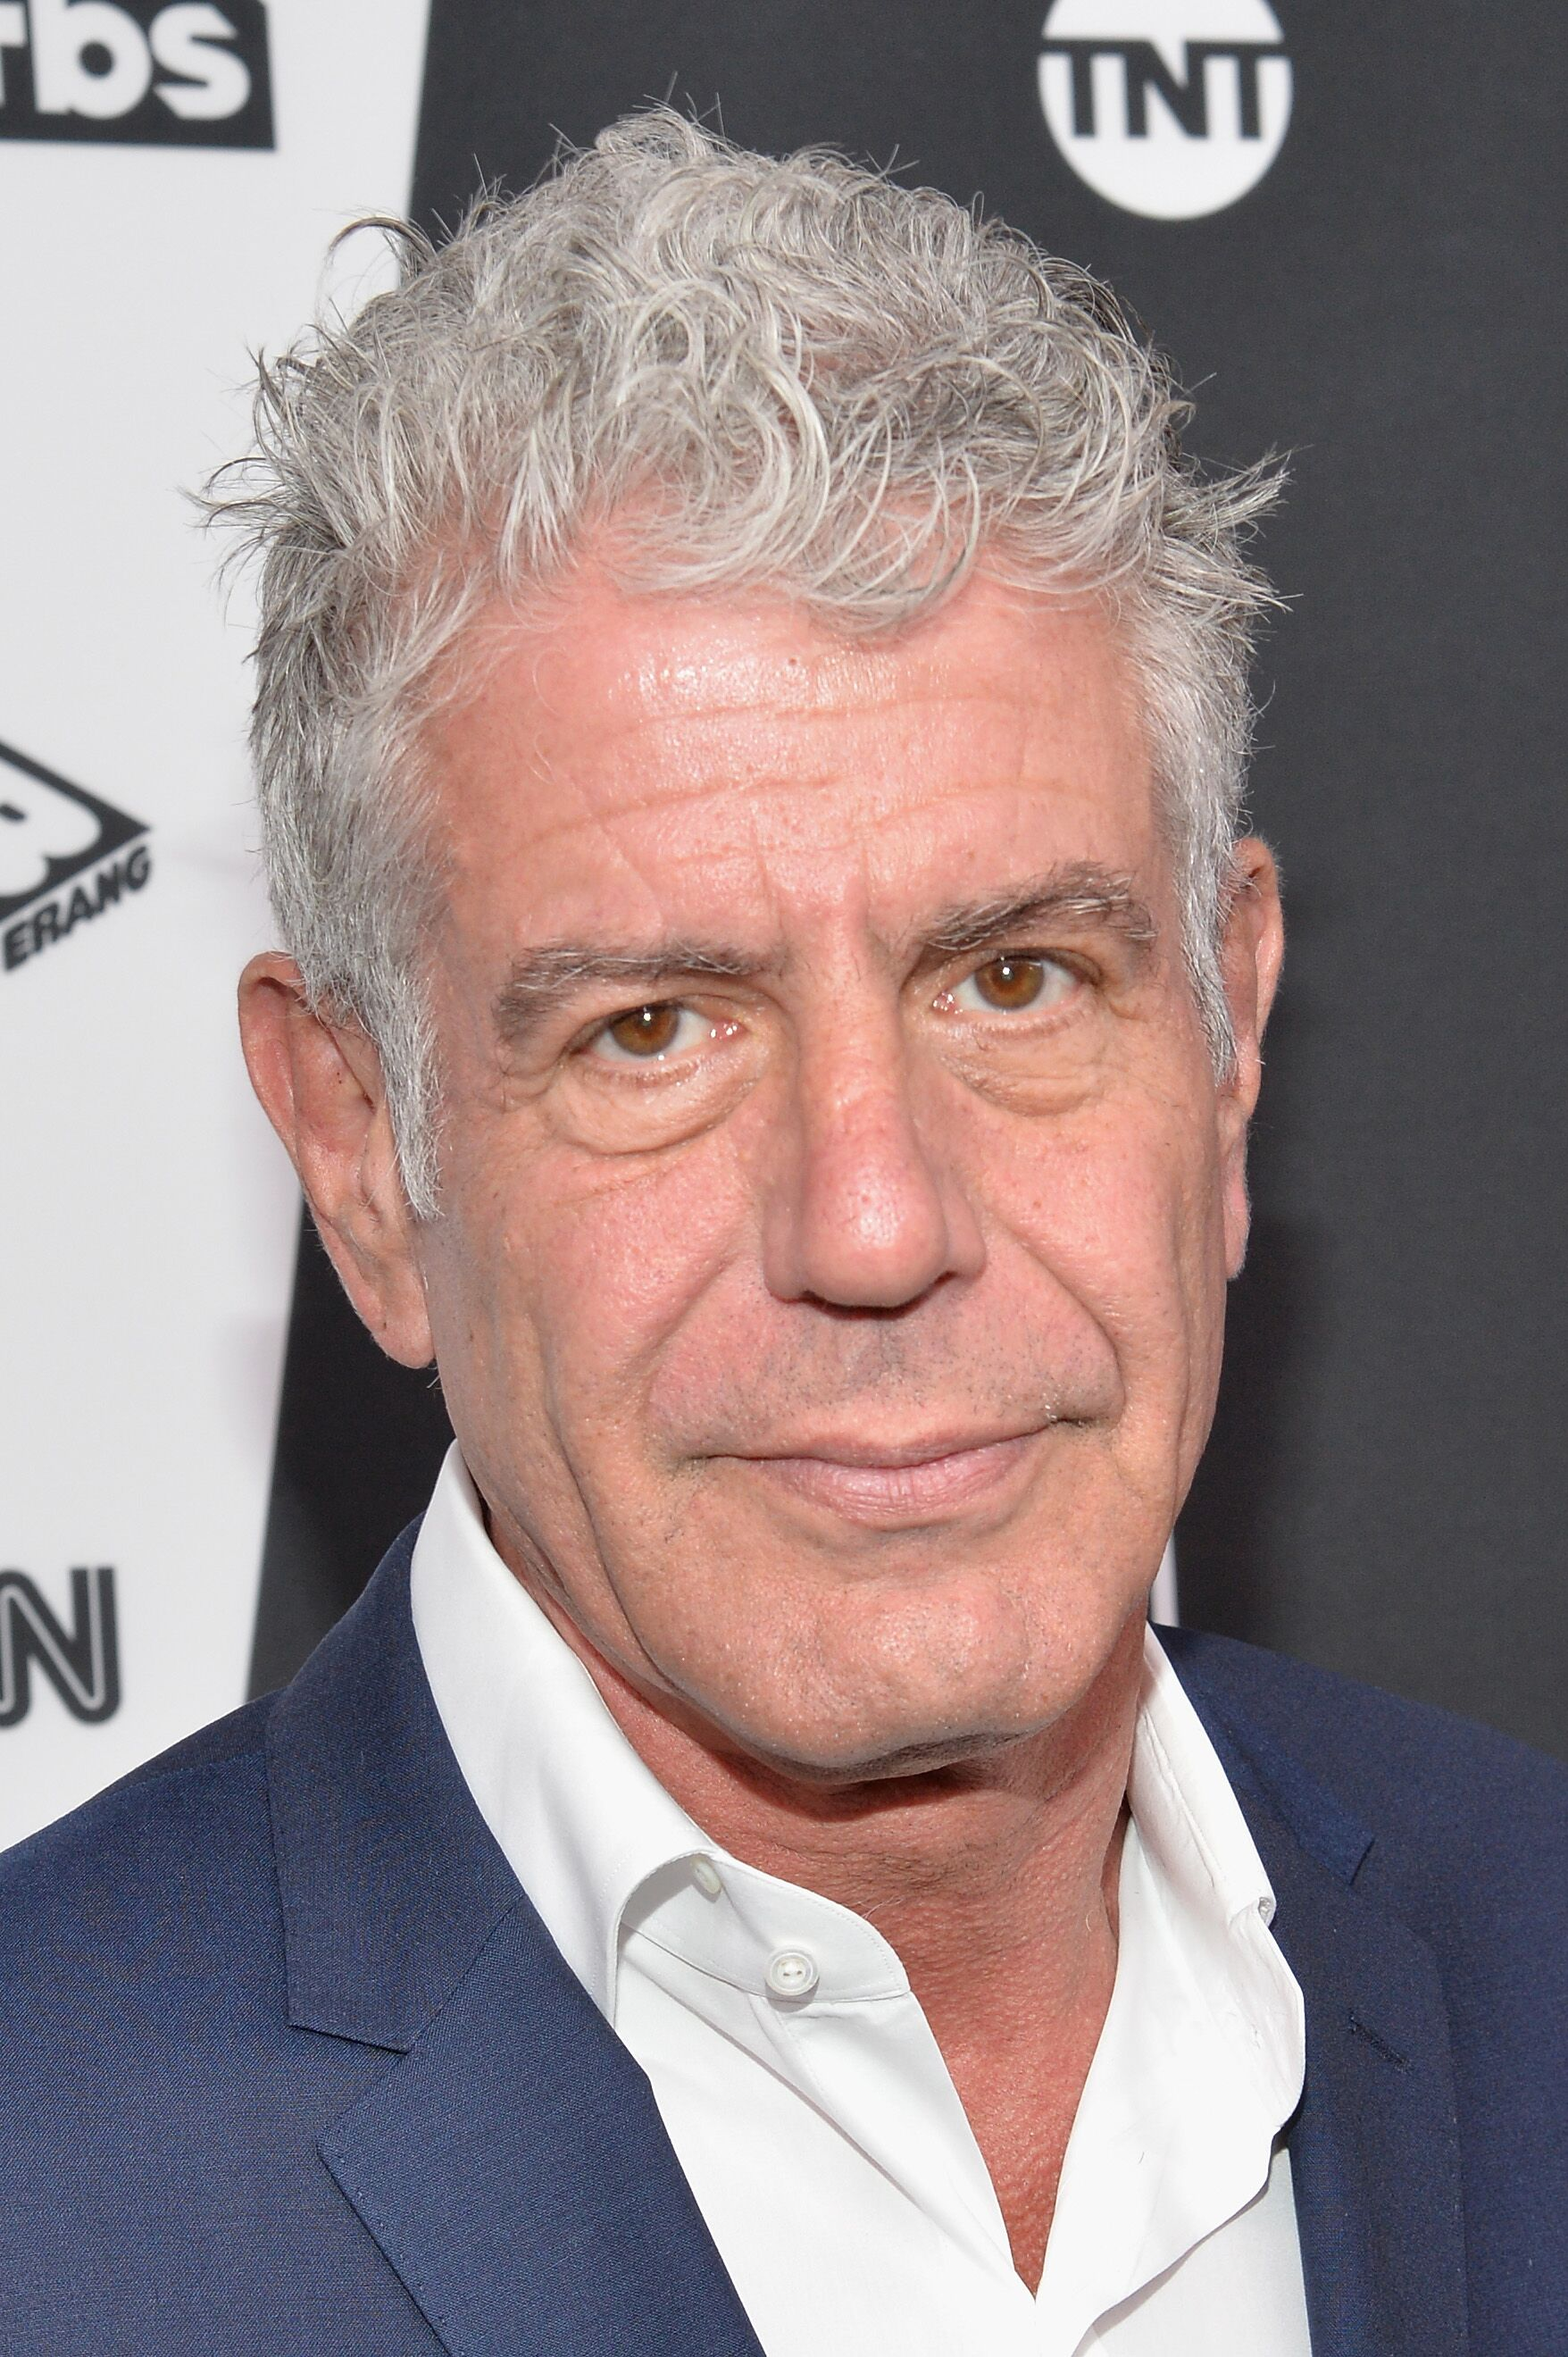 Chef Anthony Bourdain attends the Turner Upfront 2016 at Nick & Stef's Steakhouse on May 18, 2016 in New York City | Photo: Getty Images